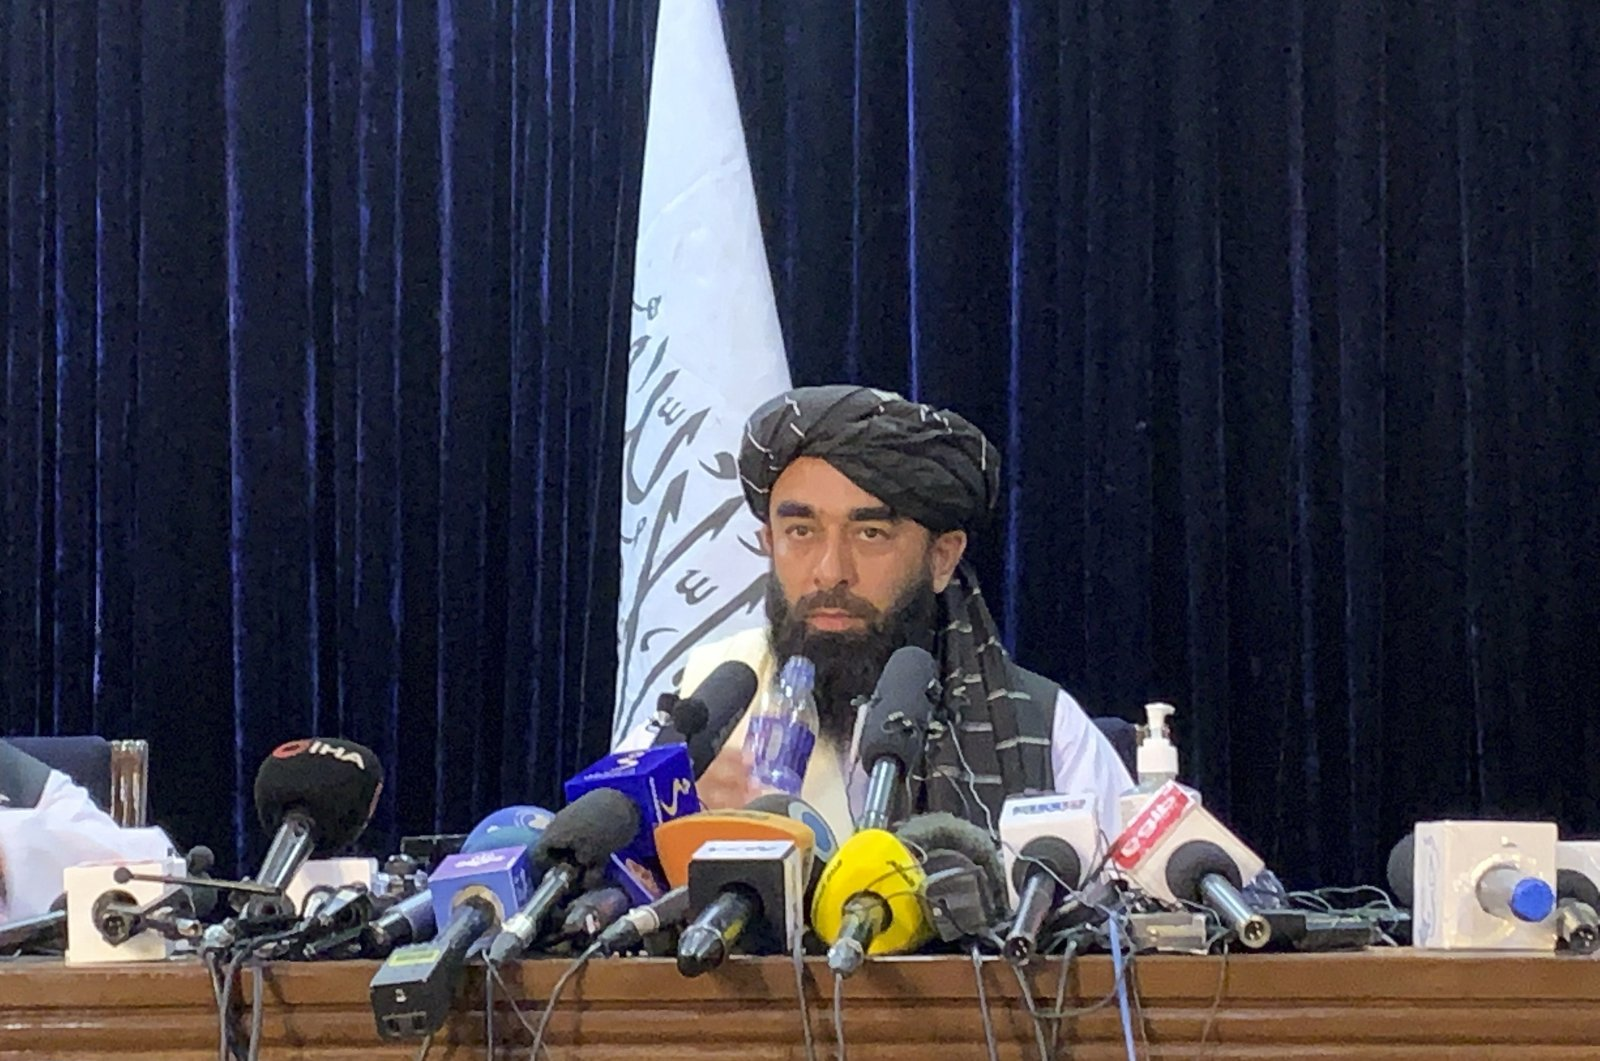 Taliban spokesperson Zabihullah Mujahid speaks at his first news conference in Kabul, Afghanistan, Tuesday, Aug. 17, 2021. (AP Photo)